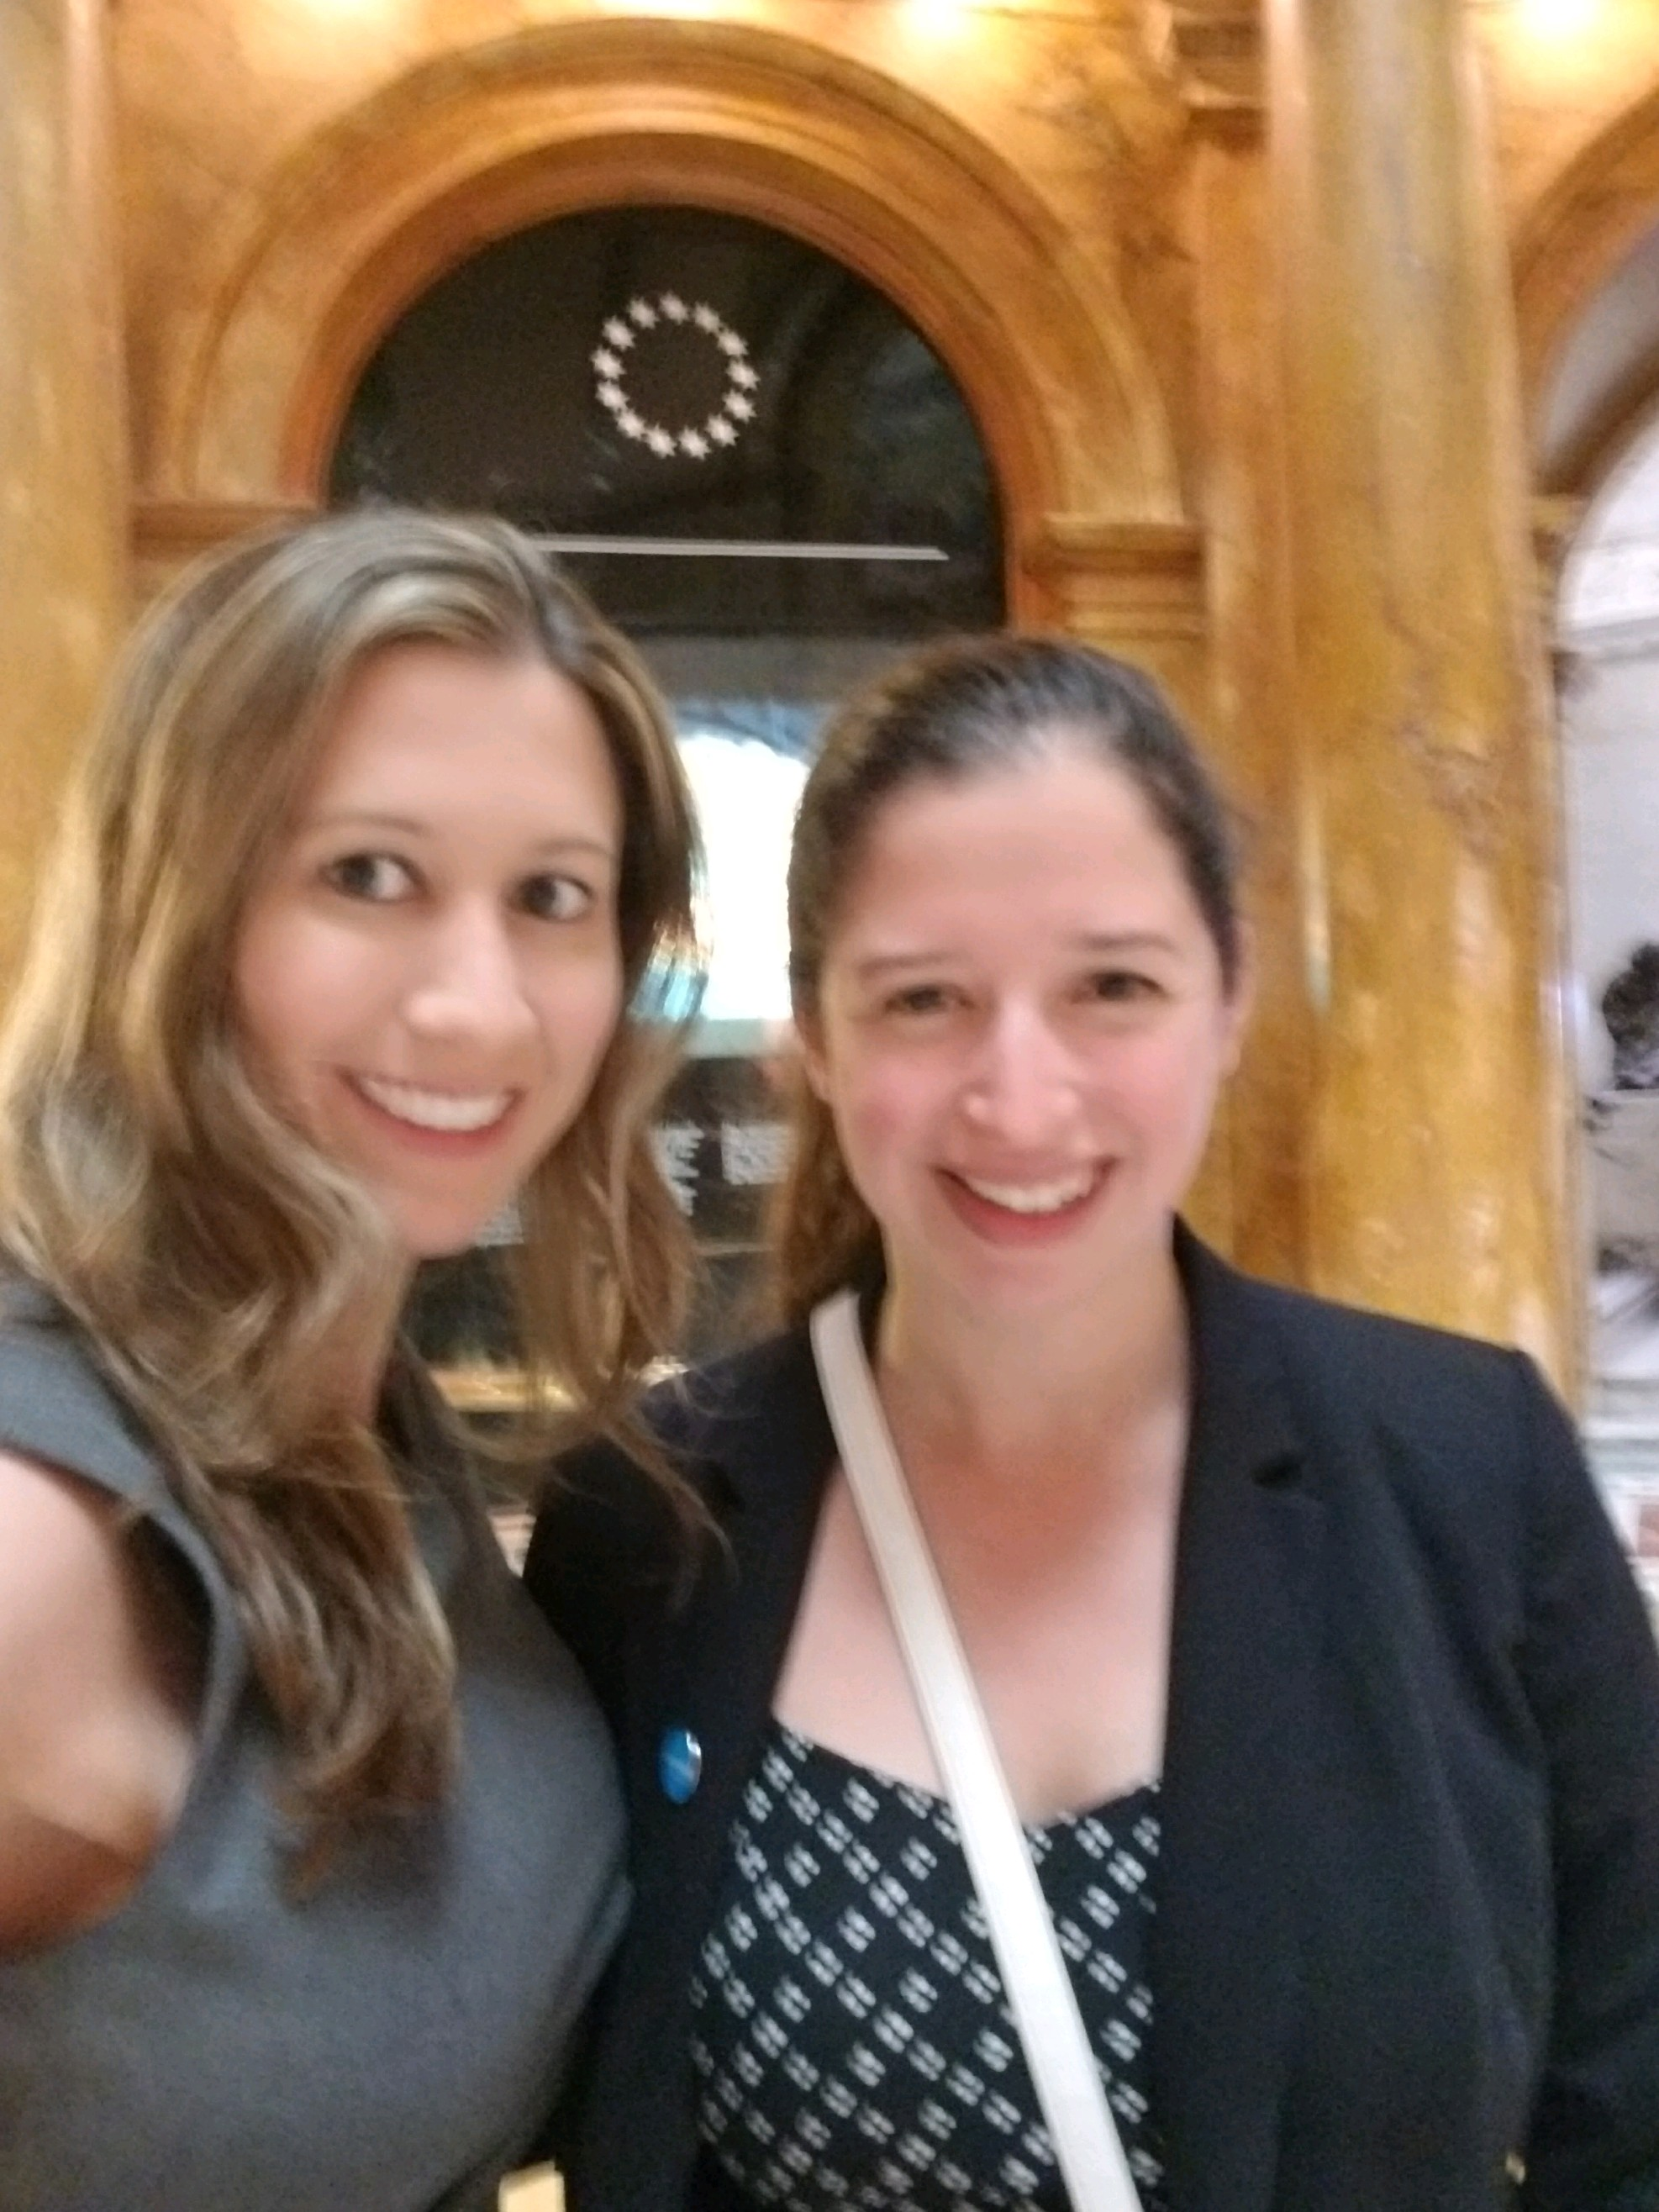 Boston CAT Member, Jamie Gadowski, and Boston Community Engagement Fellow, Jessica Morris, attend a hearing of the joint judiciary committee at the Massachusetts State House.